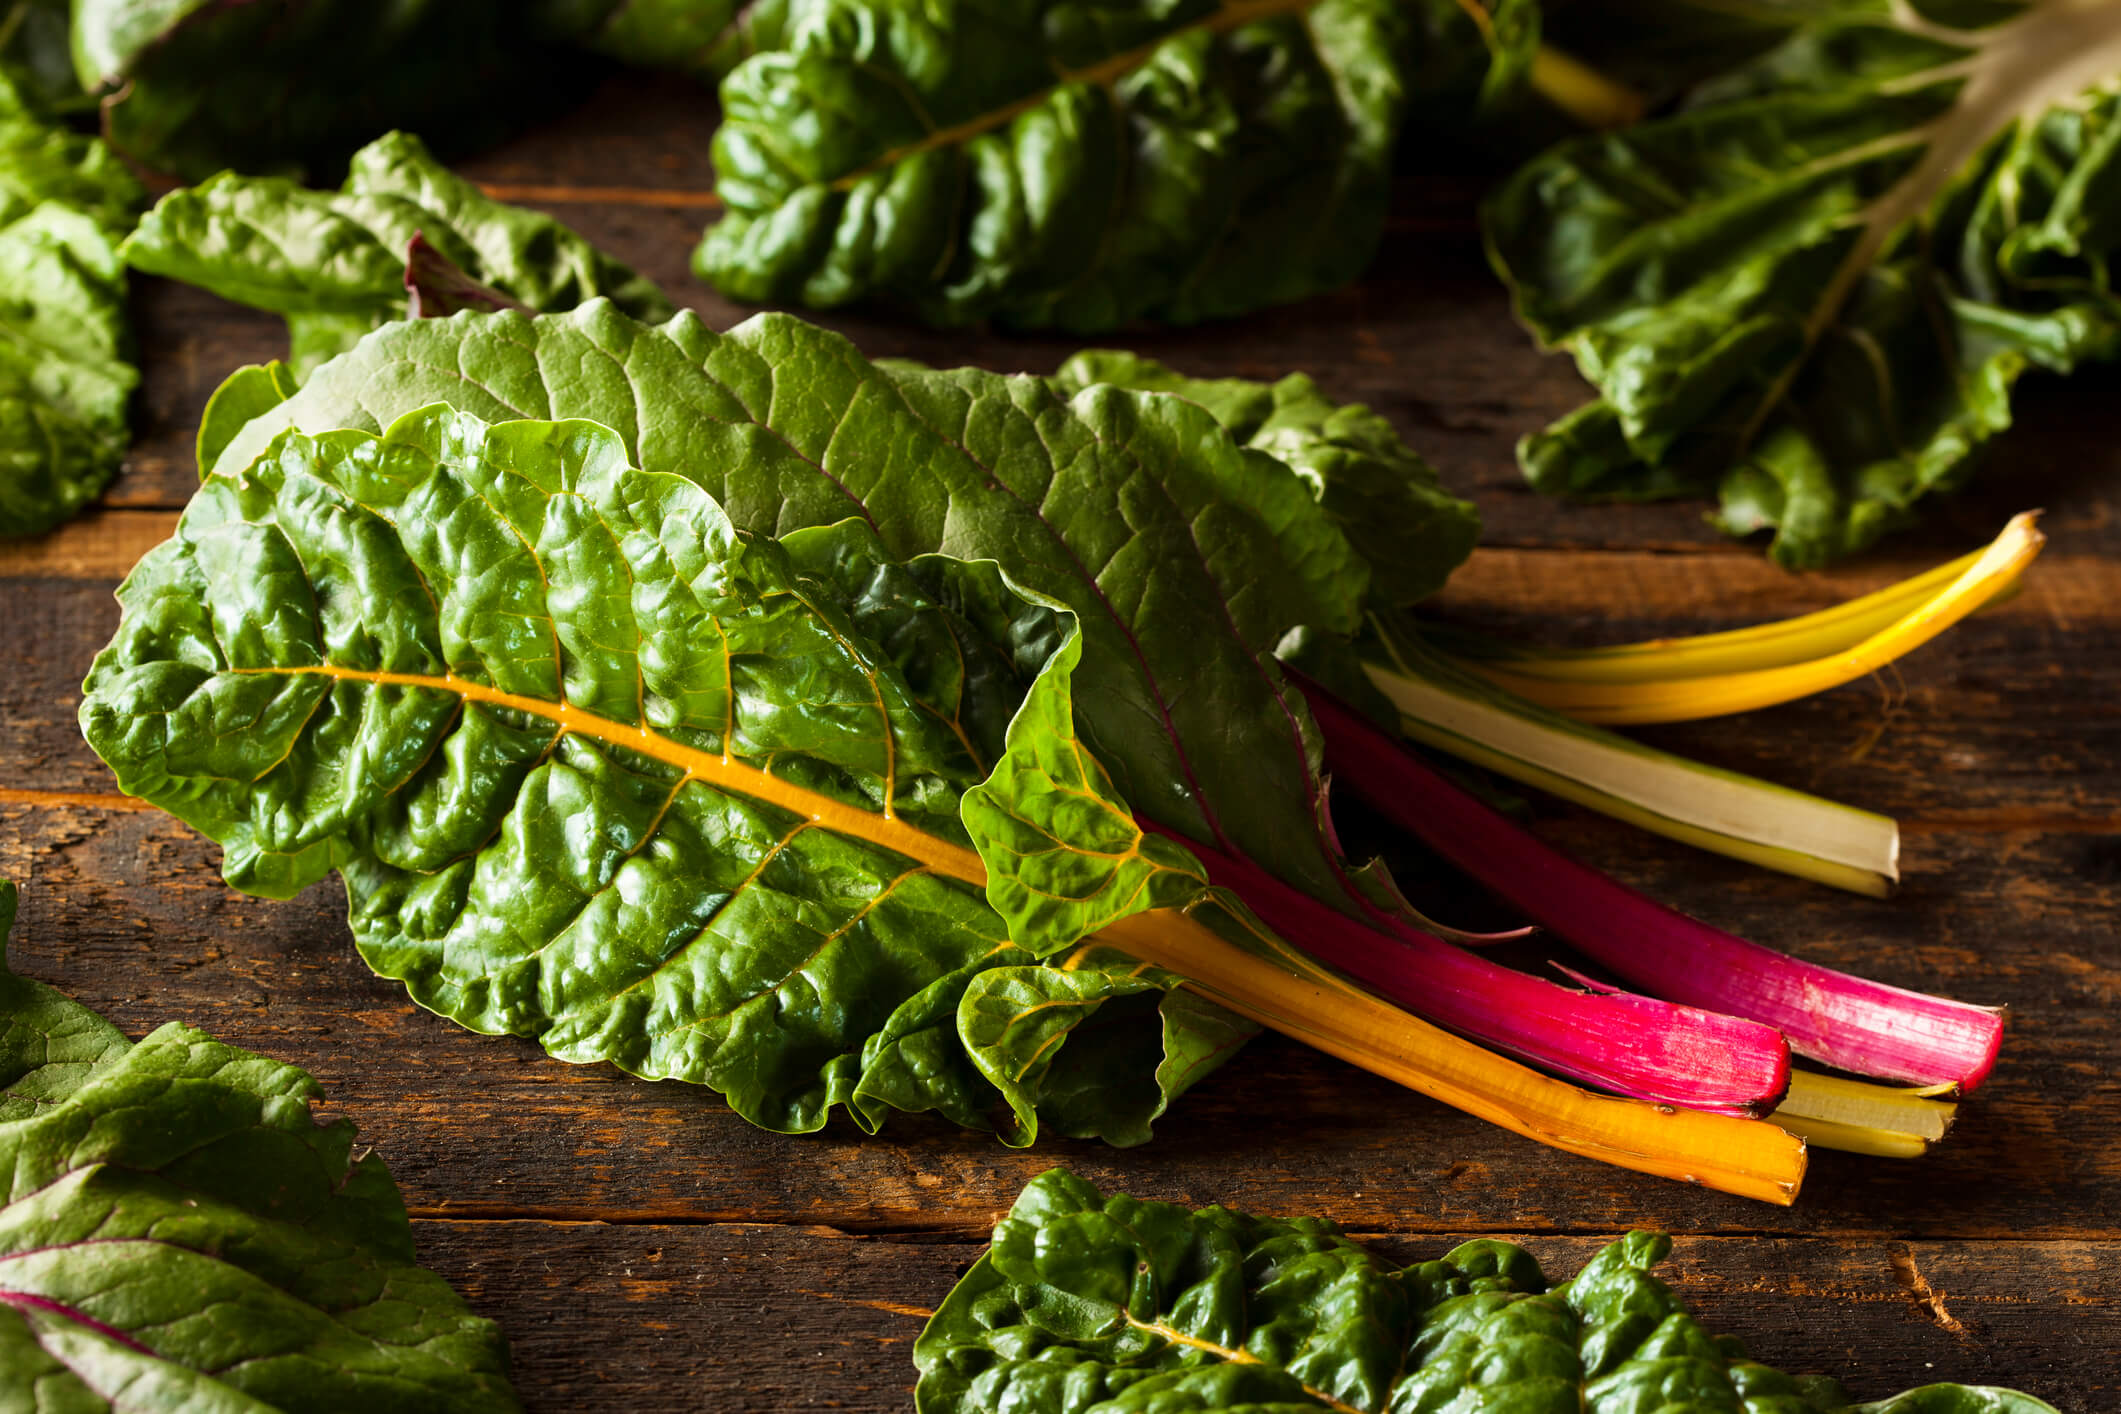 Spring vegetables and fruits: rainbow chard